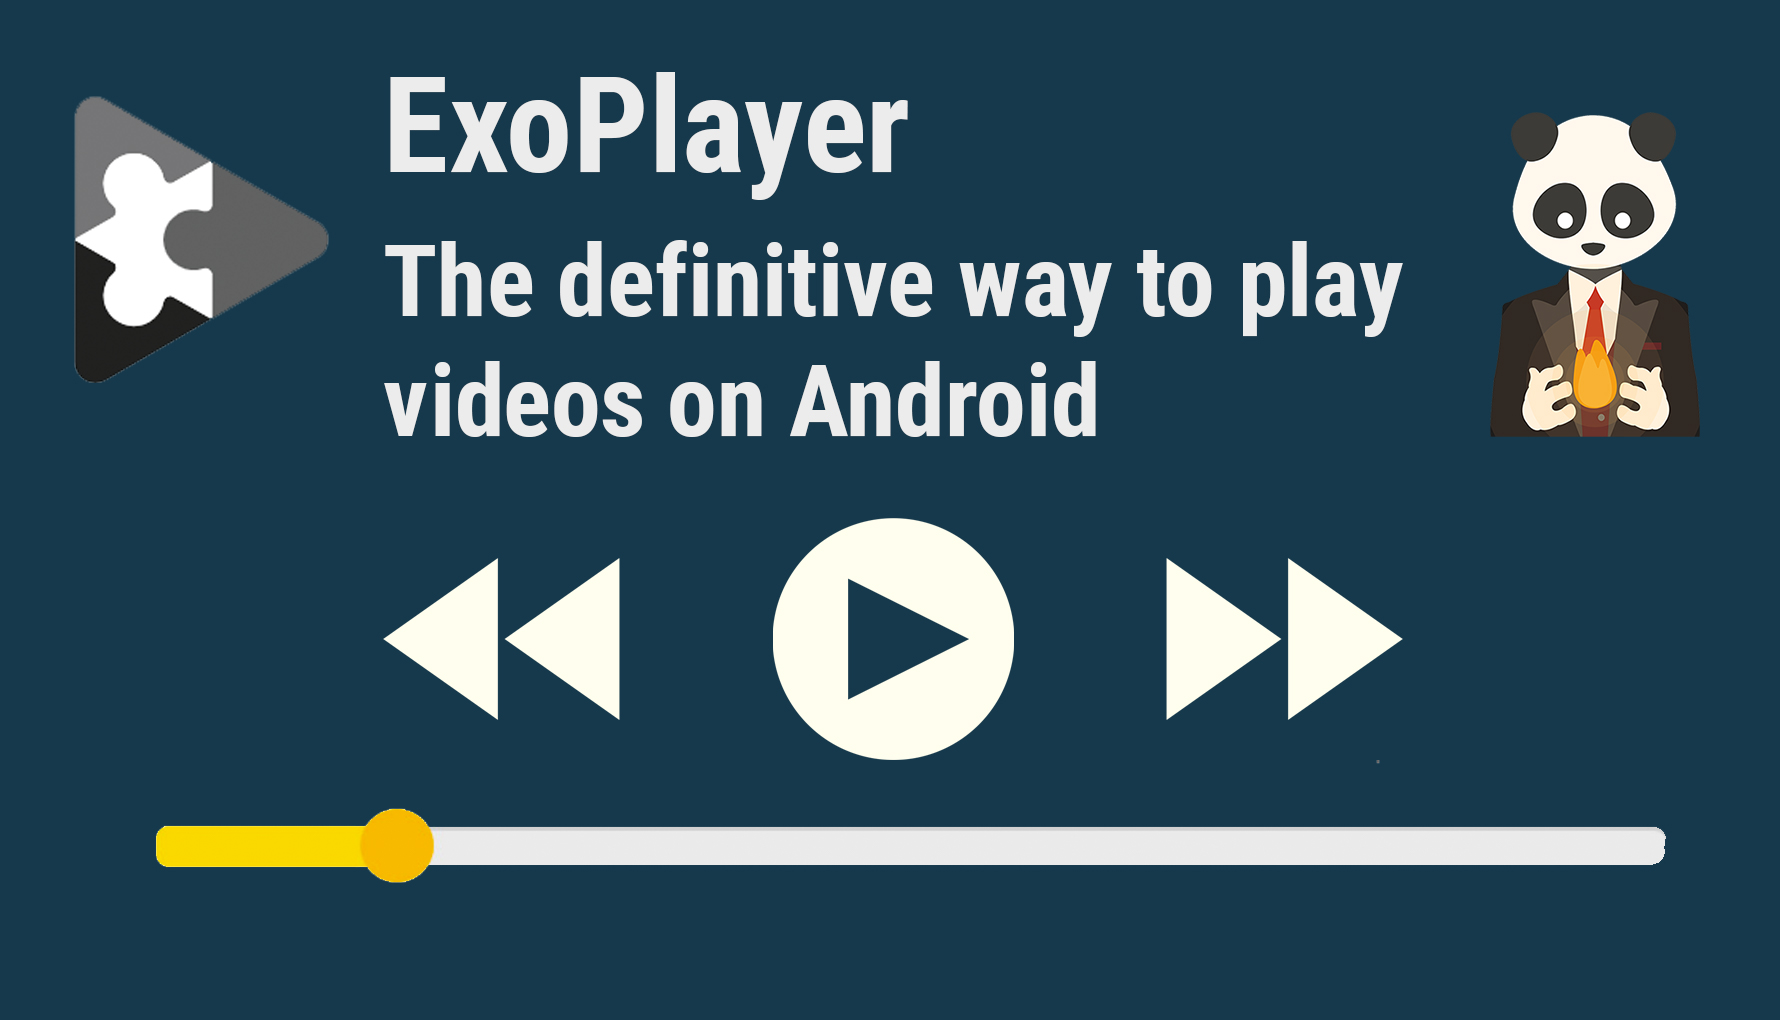 The Definitive Way to Play Videos on Android: ExoPlayer